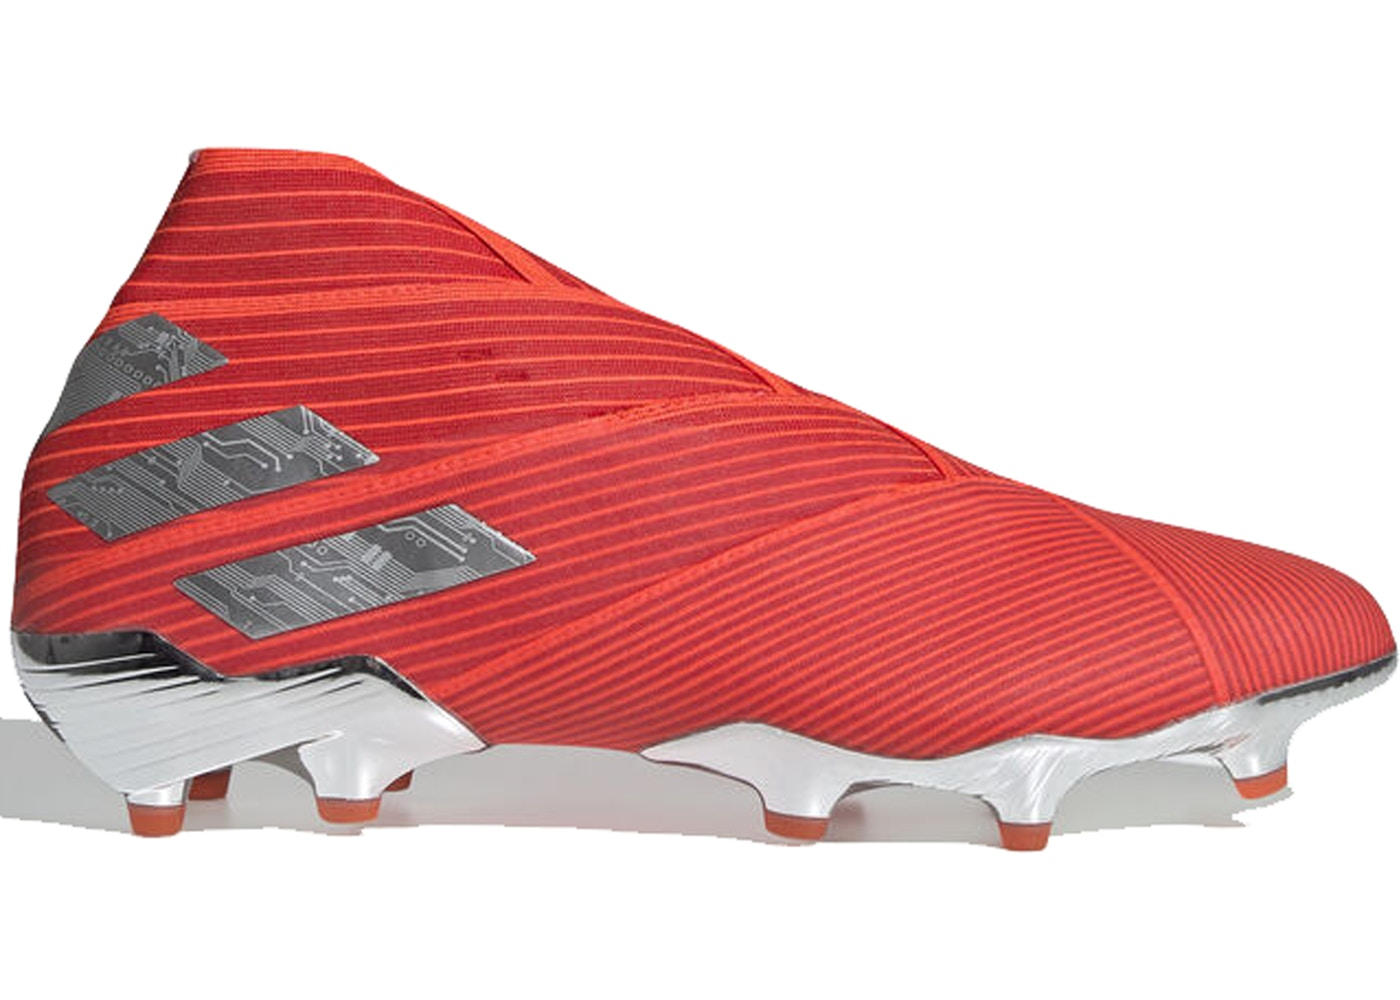 アディダス ADIDAS 19+ スニーカー 【 NEMEZIZ FIRM GROUND CLEAT ACTIVE RED SILVER METALLIC SOLAR 】 メンズ